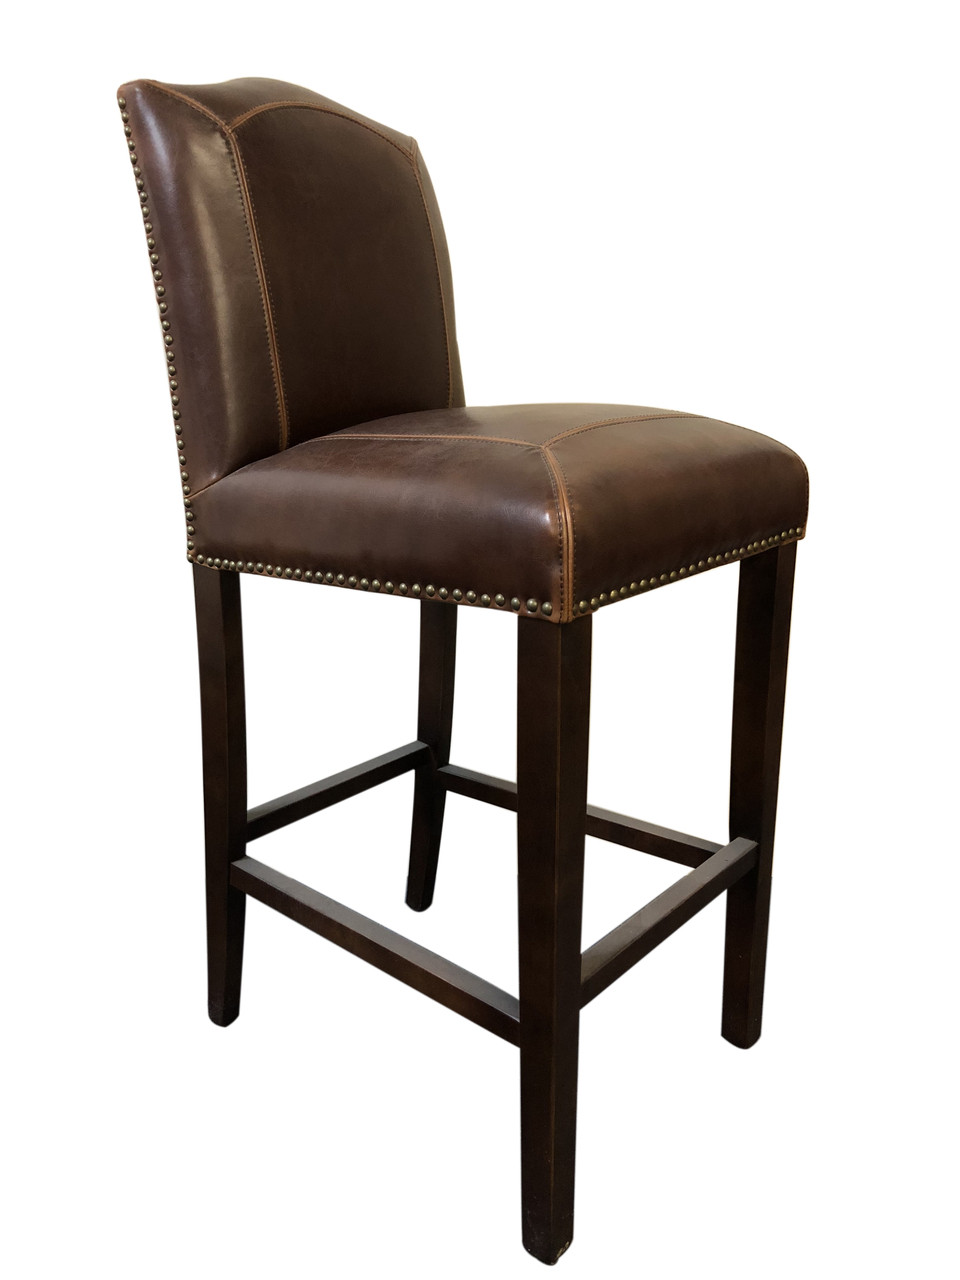 French Provincial Barstool - Brown Italian Leather - Walnut Timber